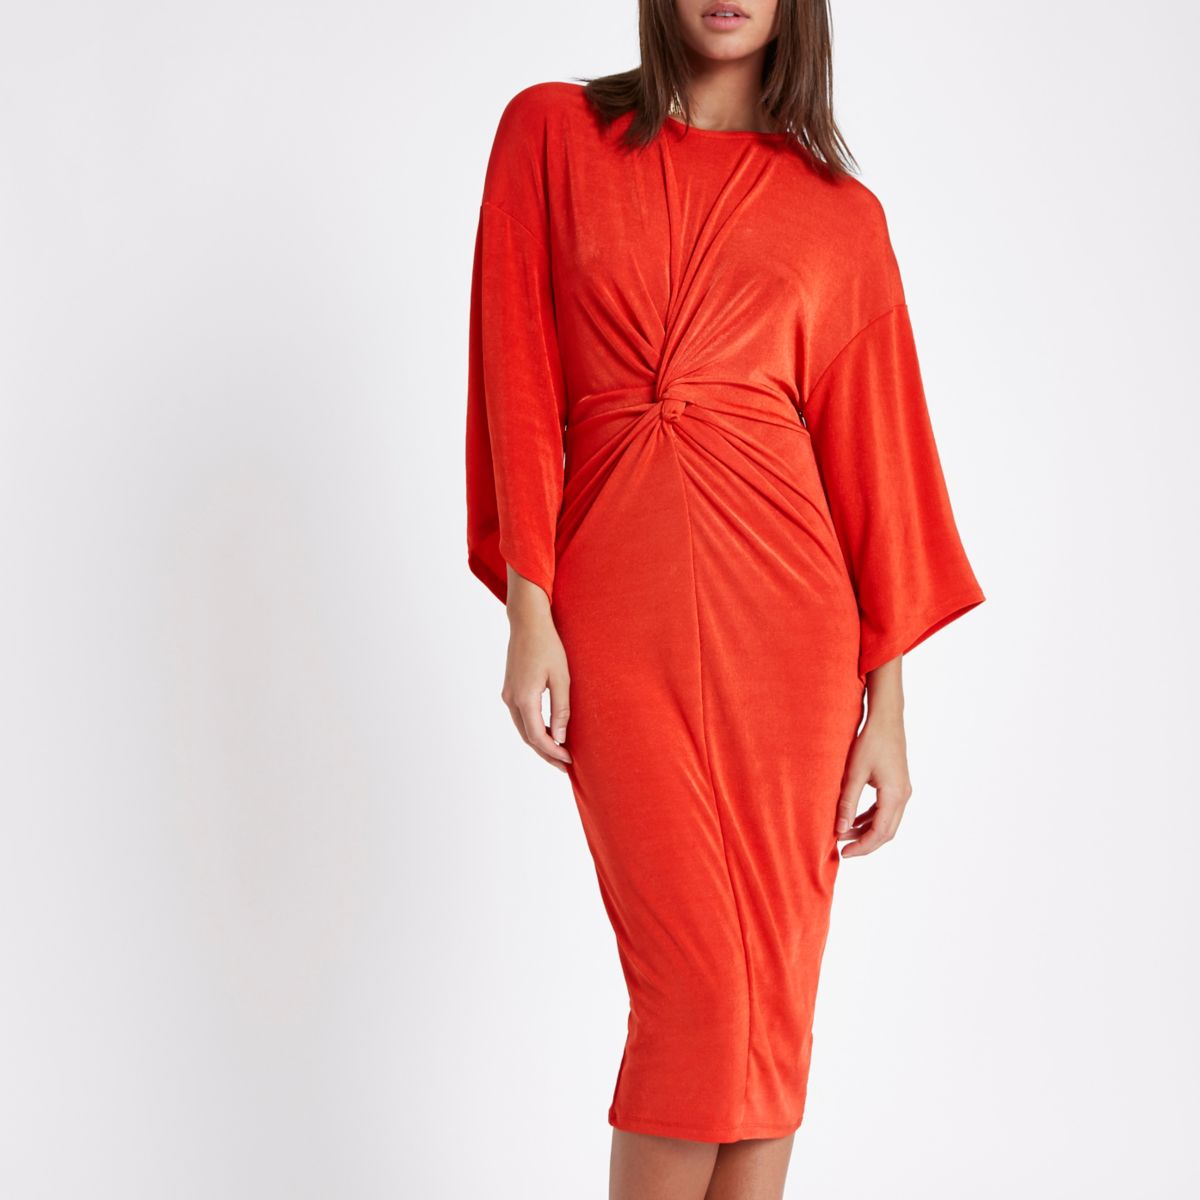 Red Knot Front Midi Dress                                  Red Knot Front Midi Dress by River Island